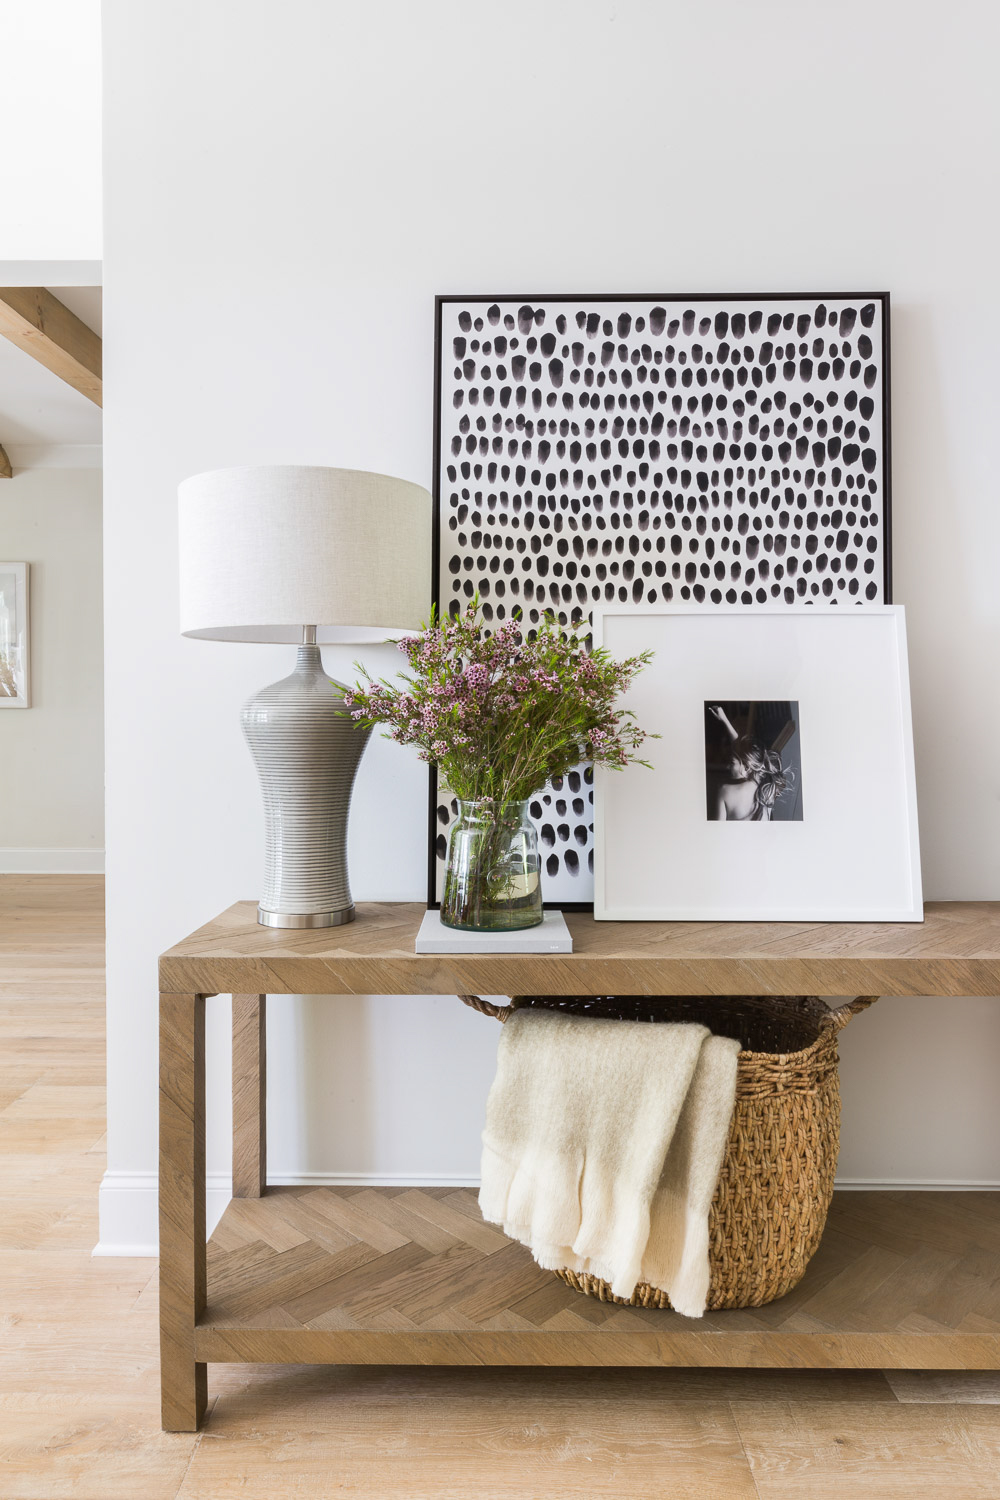 SHOP THE LOOK:   Lamar Console Table ,  Black Dots Framed Artwork ,  Dubrava Table Lamp ,  Medium French Mason Jar ,  Cozy Wool Throw  | Scout & Nimble Design from the  Hilltop Home Project  | Photography by  Alyssa Rosenheck